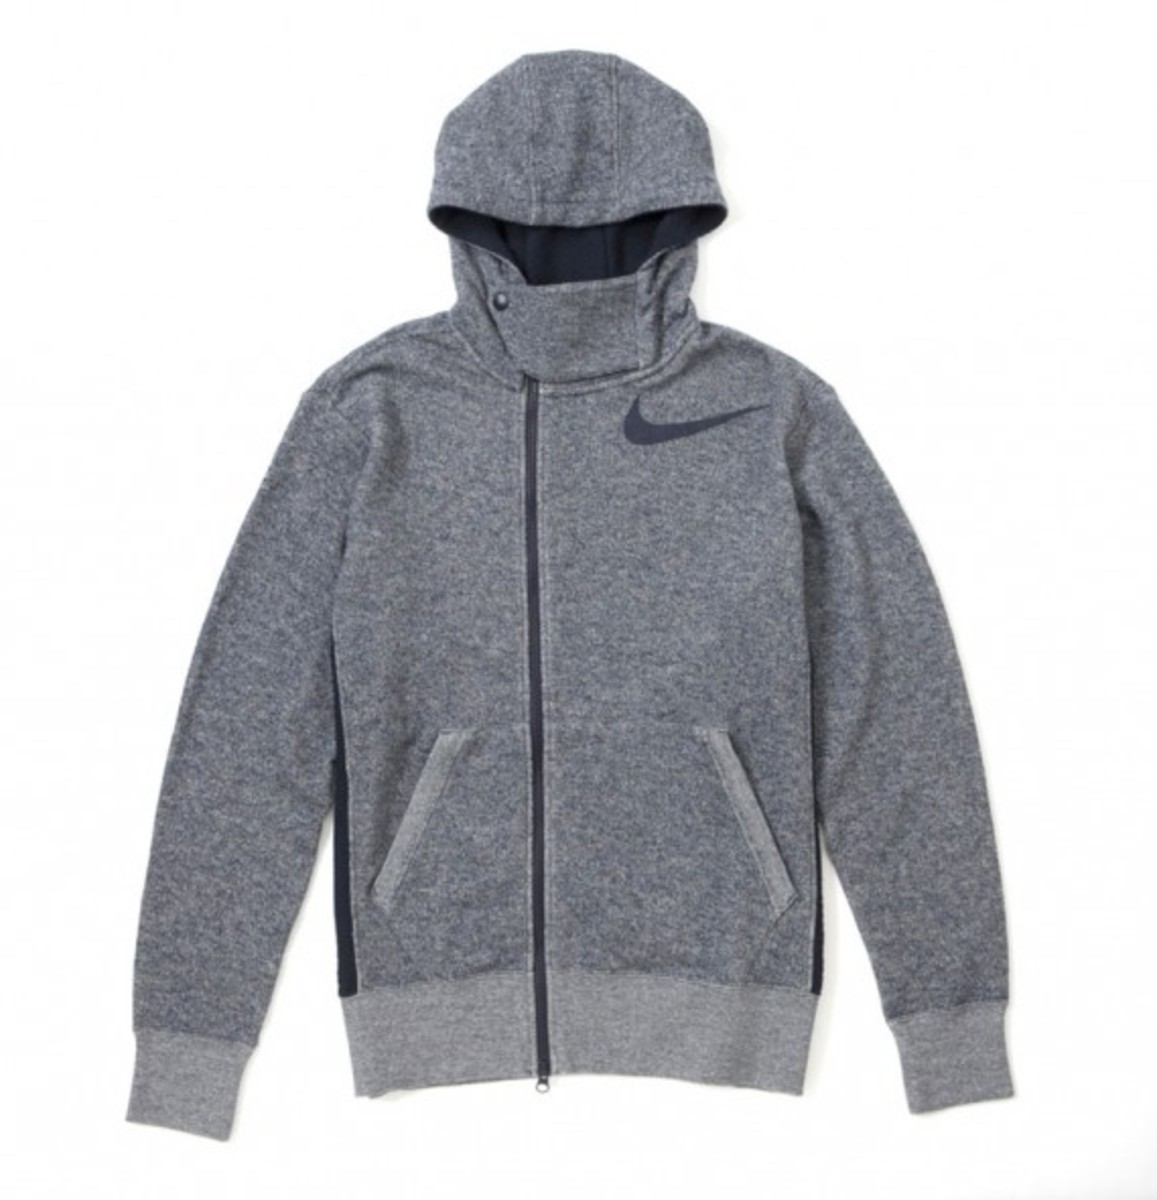 nike-sportswear-grey-navy-collection-05